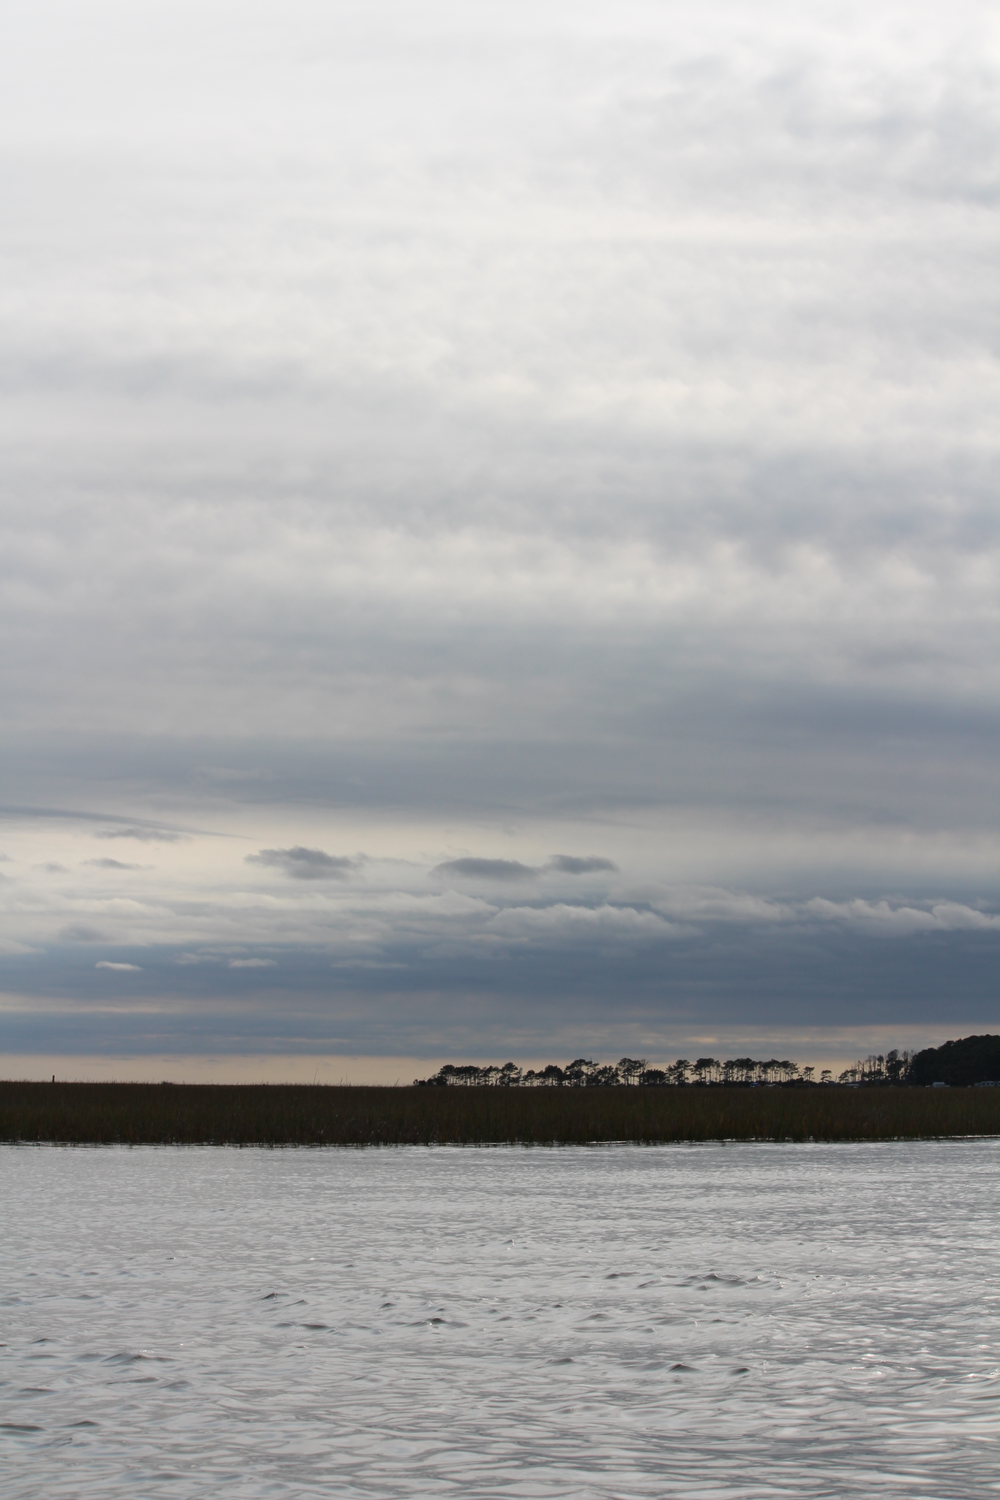 A heavily clouded sky hangs above loblollies and the silver water of the Assateague Channel. This shallow, tidal salt marsh tucked between  Chincoteague Island and   the long tail of Assateague Island is the location of the annual Pony Swim made famous in Marguerite Henry's  Misty of Chincoteague . Barrier islands like Chincoteague, along the ocean side of the Eastern Shore of Maryland and Virginia, are rich environmental landscapes, constantly changing because of shifting sediments, wave action, and erosion.